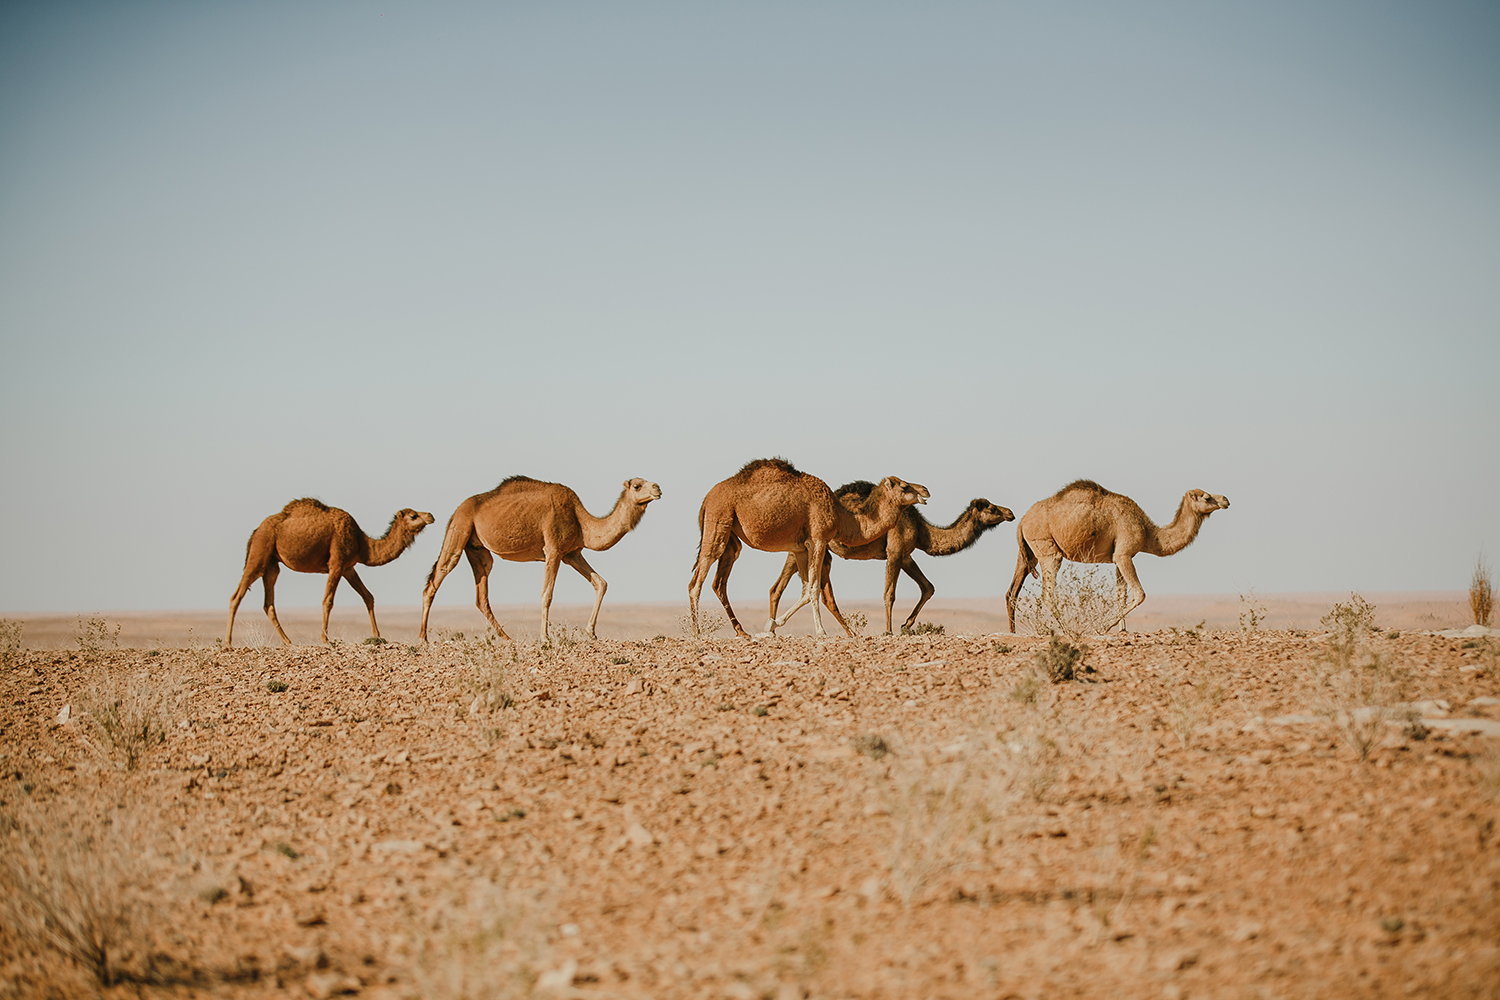 SN2_1116-sophie-narses-photographe-Tunisie-Voyage-book-shooting-geneve-mariage-suisse-famille-animaux-tirages-art-cours-photo-paysages-desert